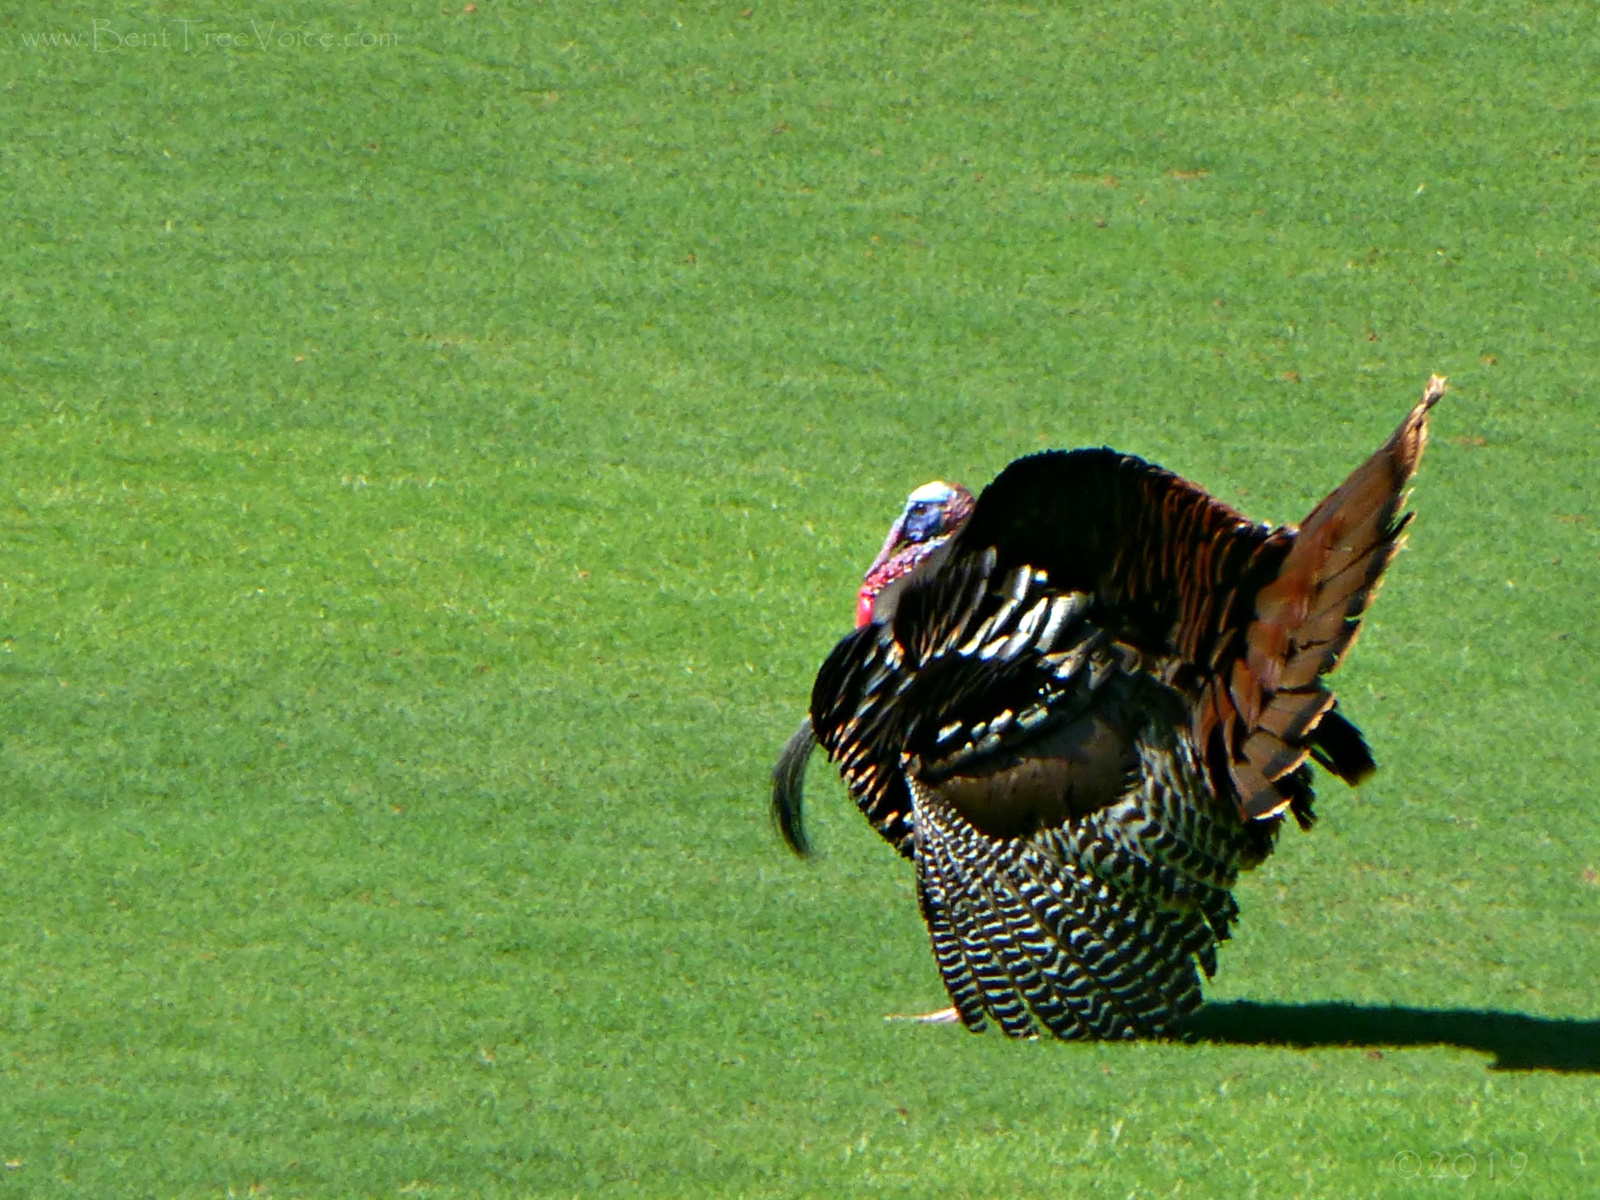 May 5, 2019 - Turkey on #9 fairway in Bent Tree